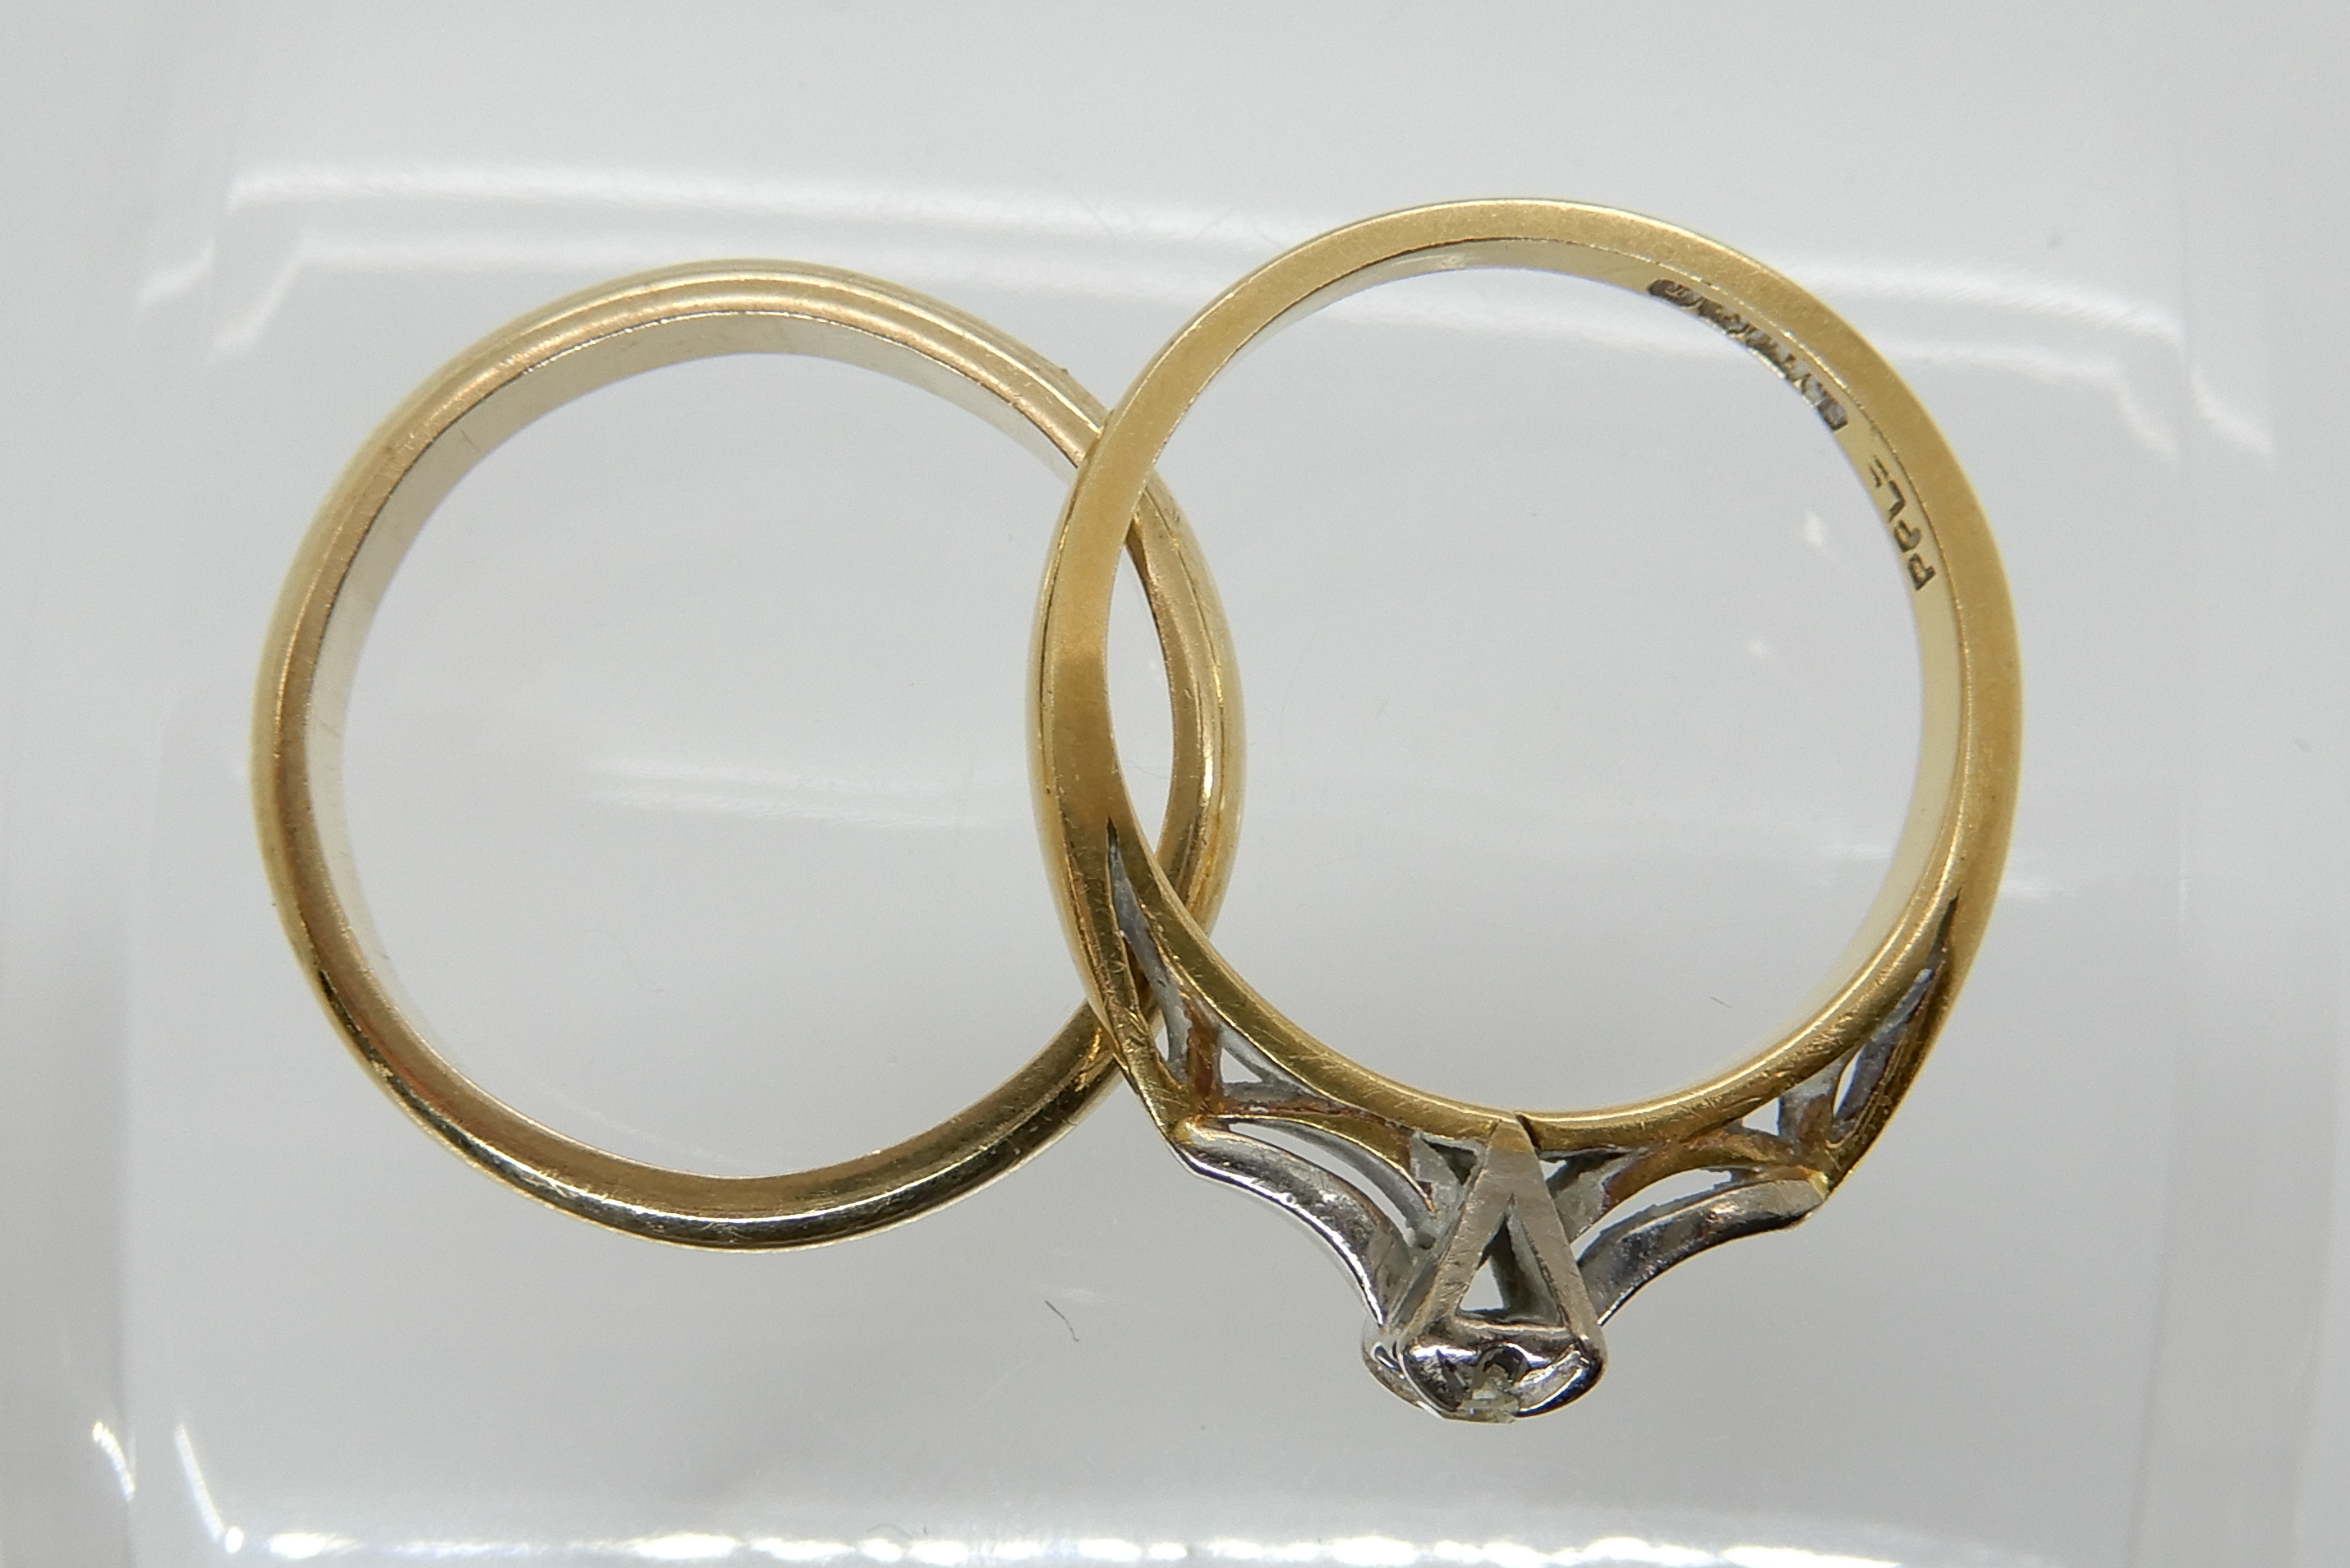 Lot 44 - An 18ct gold diamond illusion set ring, size L1/2, weight 2.9gms, together with a 9ct gold wedding